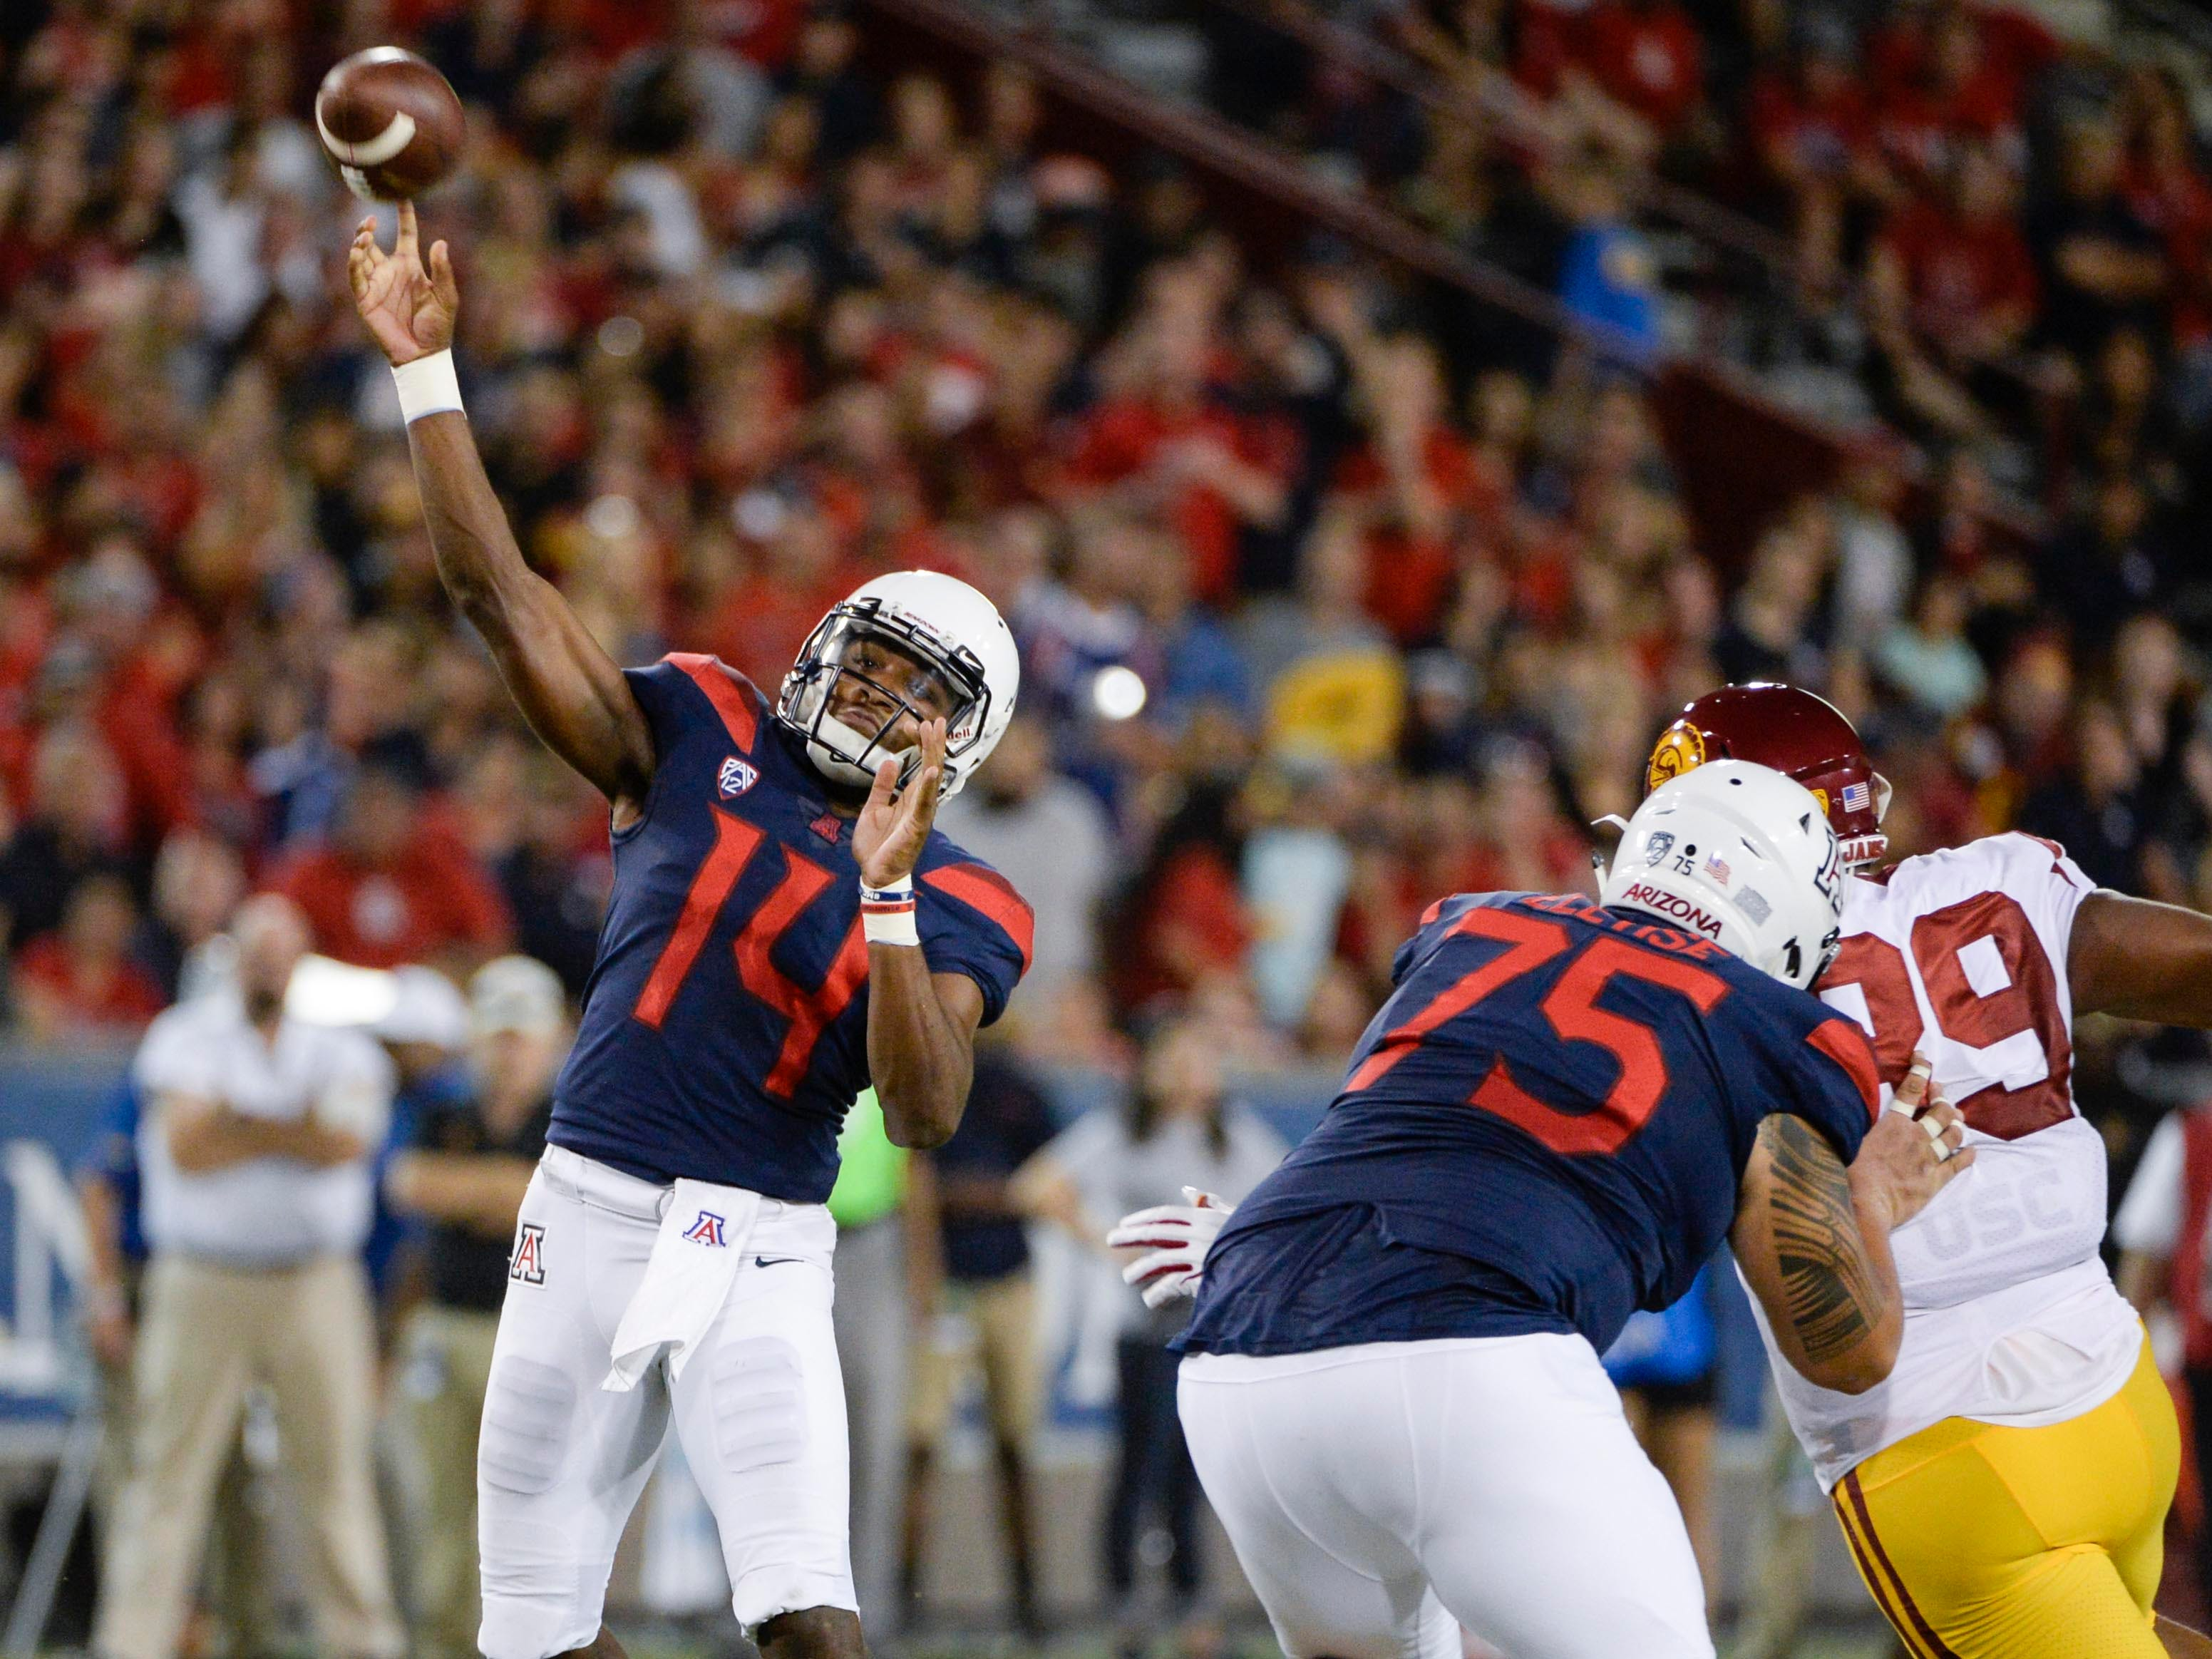 Sep 29, 2018; Tucson, AZ, USA; Arizona Wildcats quarterback Khalil Tate (14) passes the ball against the Southern California Trojans during the second half at Arizona Stadium. Mandatory Credit: Casey Sapio-USA TODAY Sports